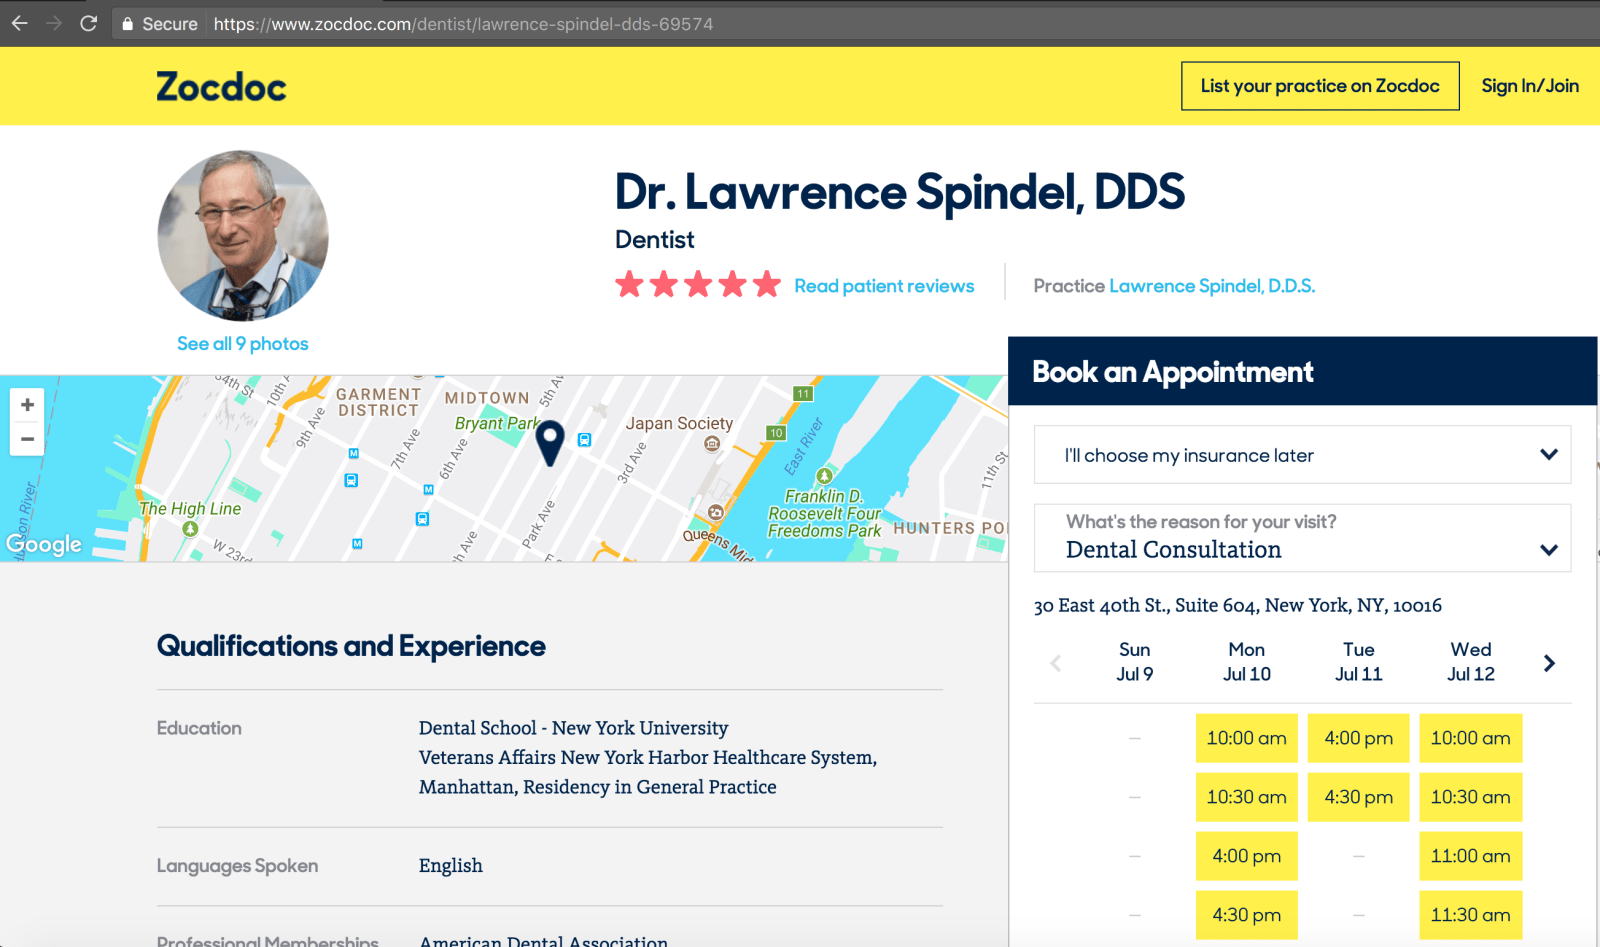 Dr. Spindel Zocdoc Profile